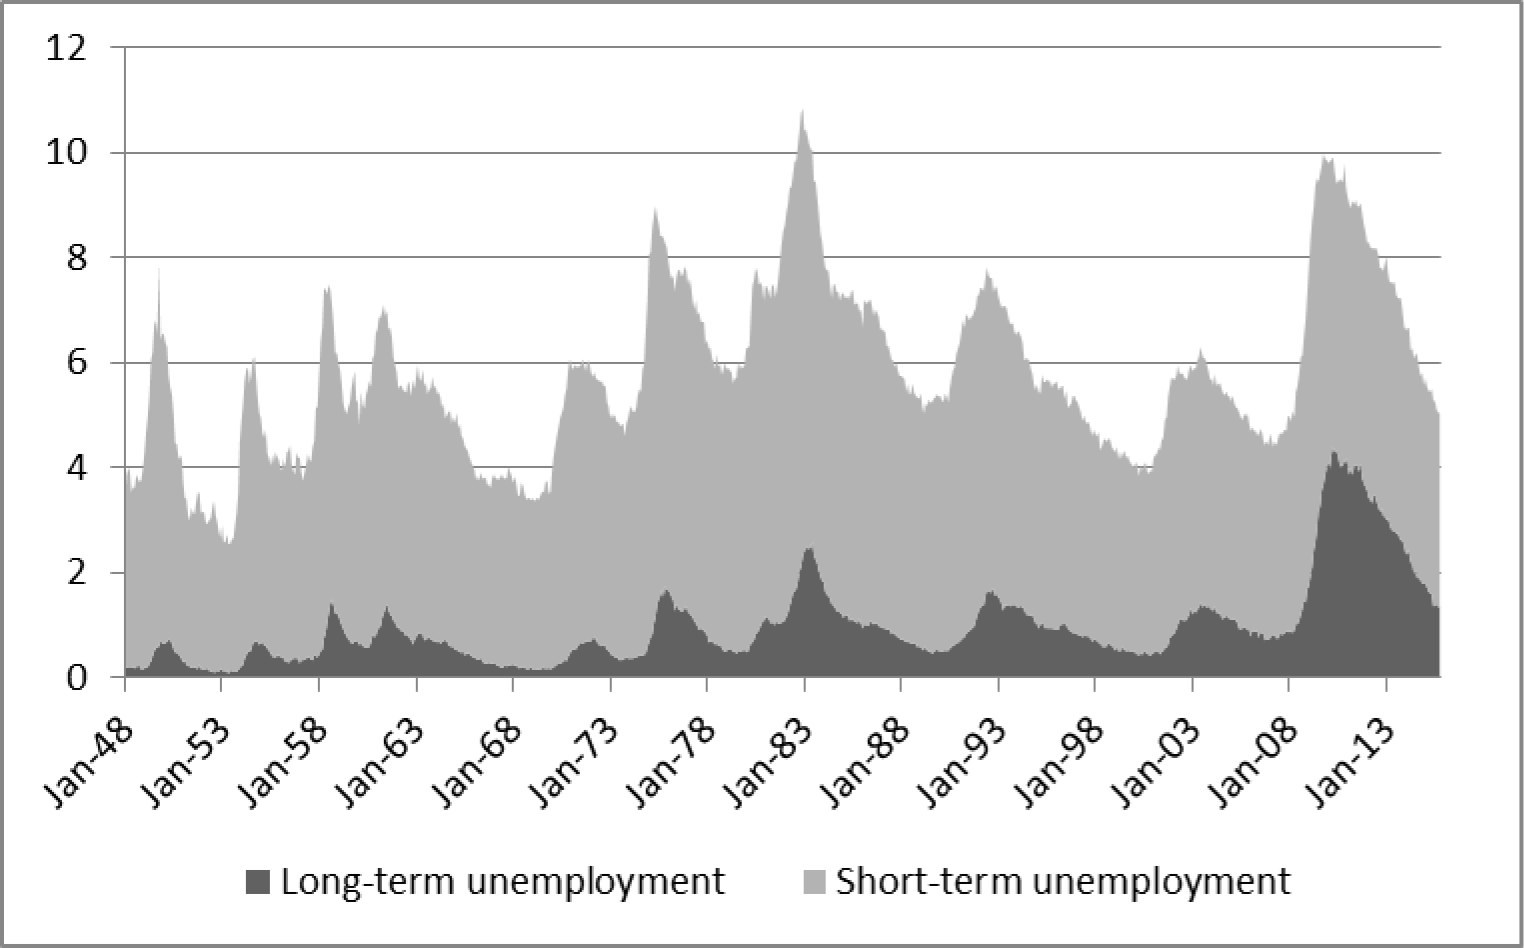 Figure 4: Total, Short-term, and Long-term Unemployment. See accessible link for data.